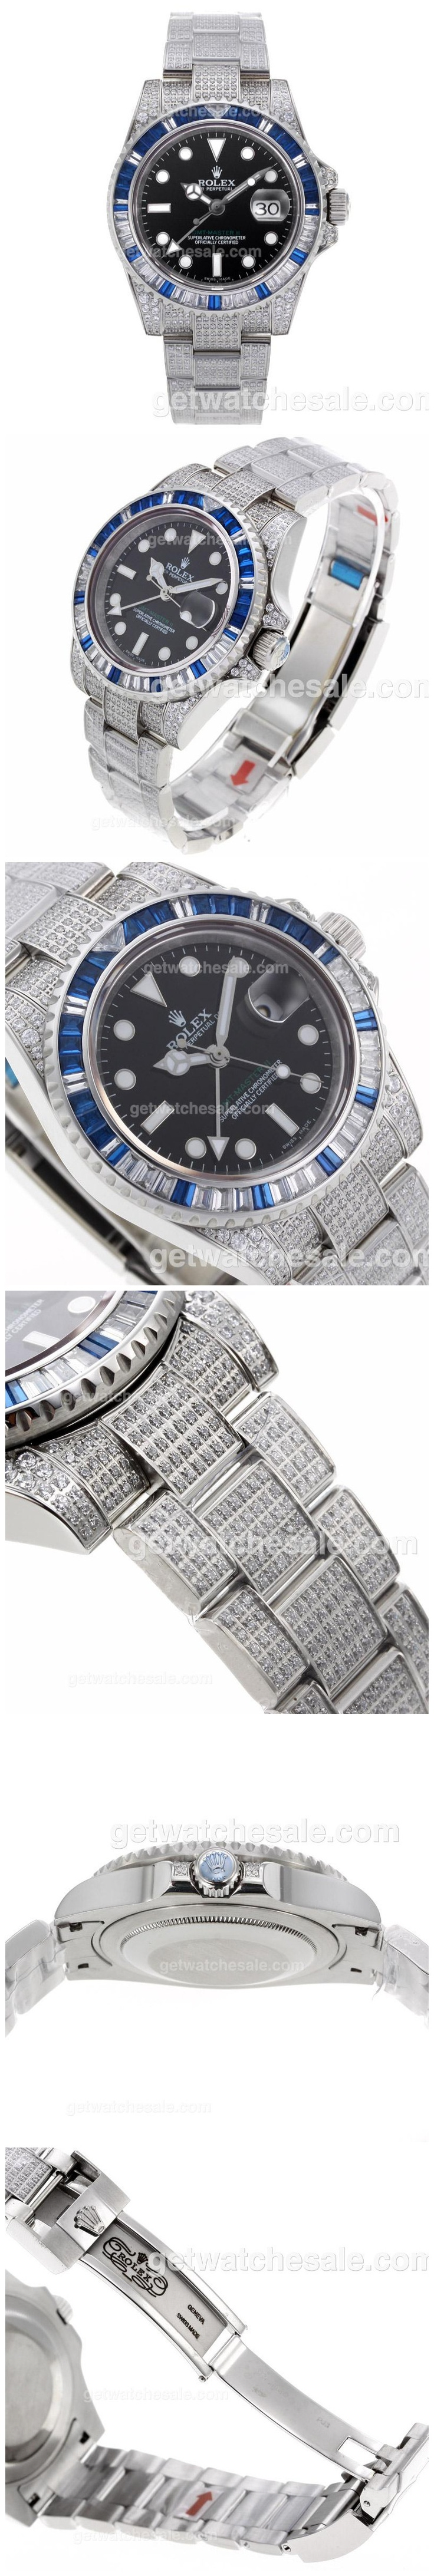 Rolex GMT-Master II Swiss ETA 2836 Movement Blue/White CZ Diamond Bezel with Full Diamond Strap ,sale $918.00